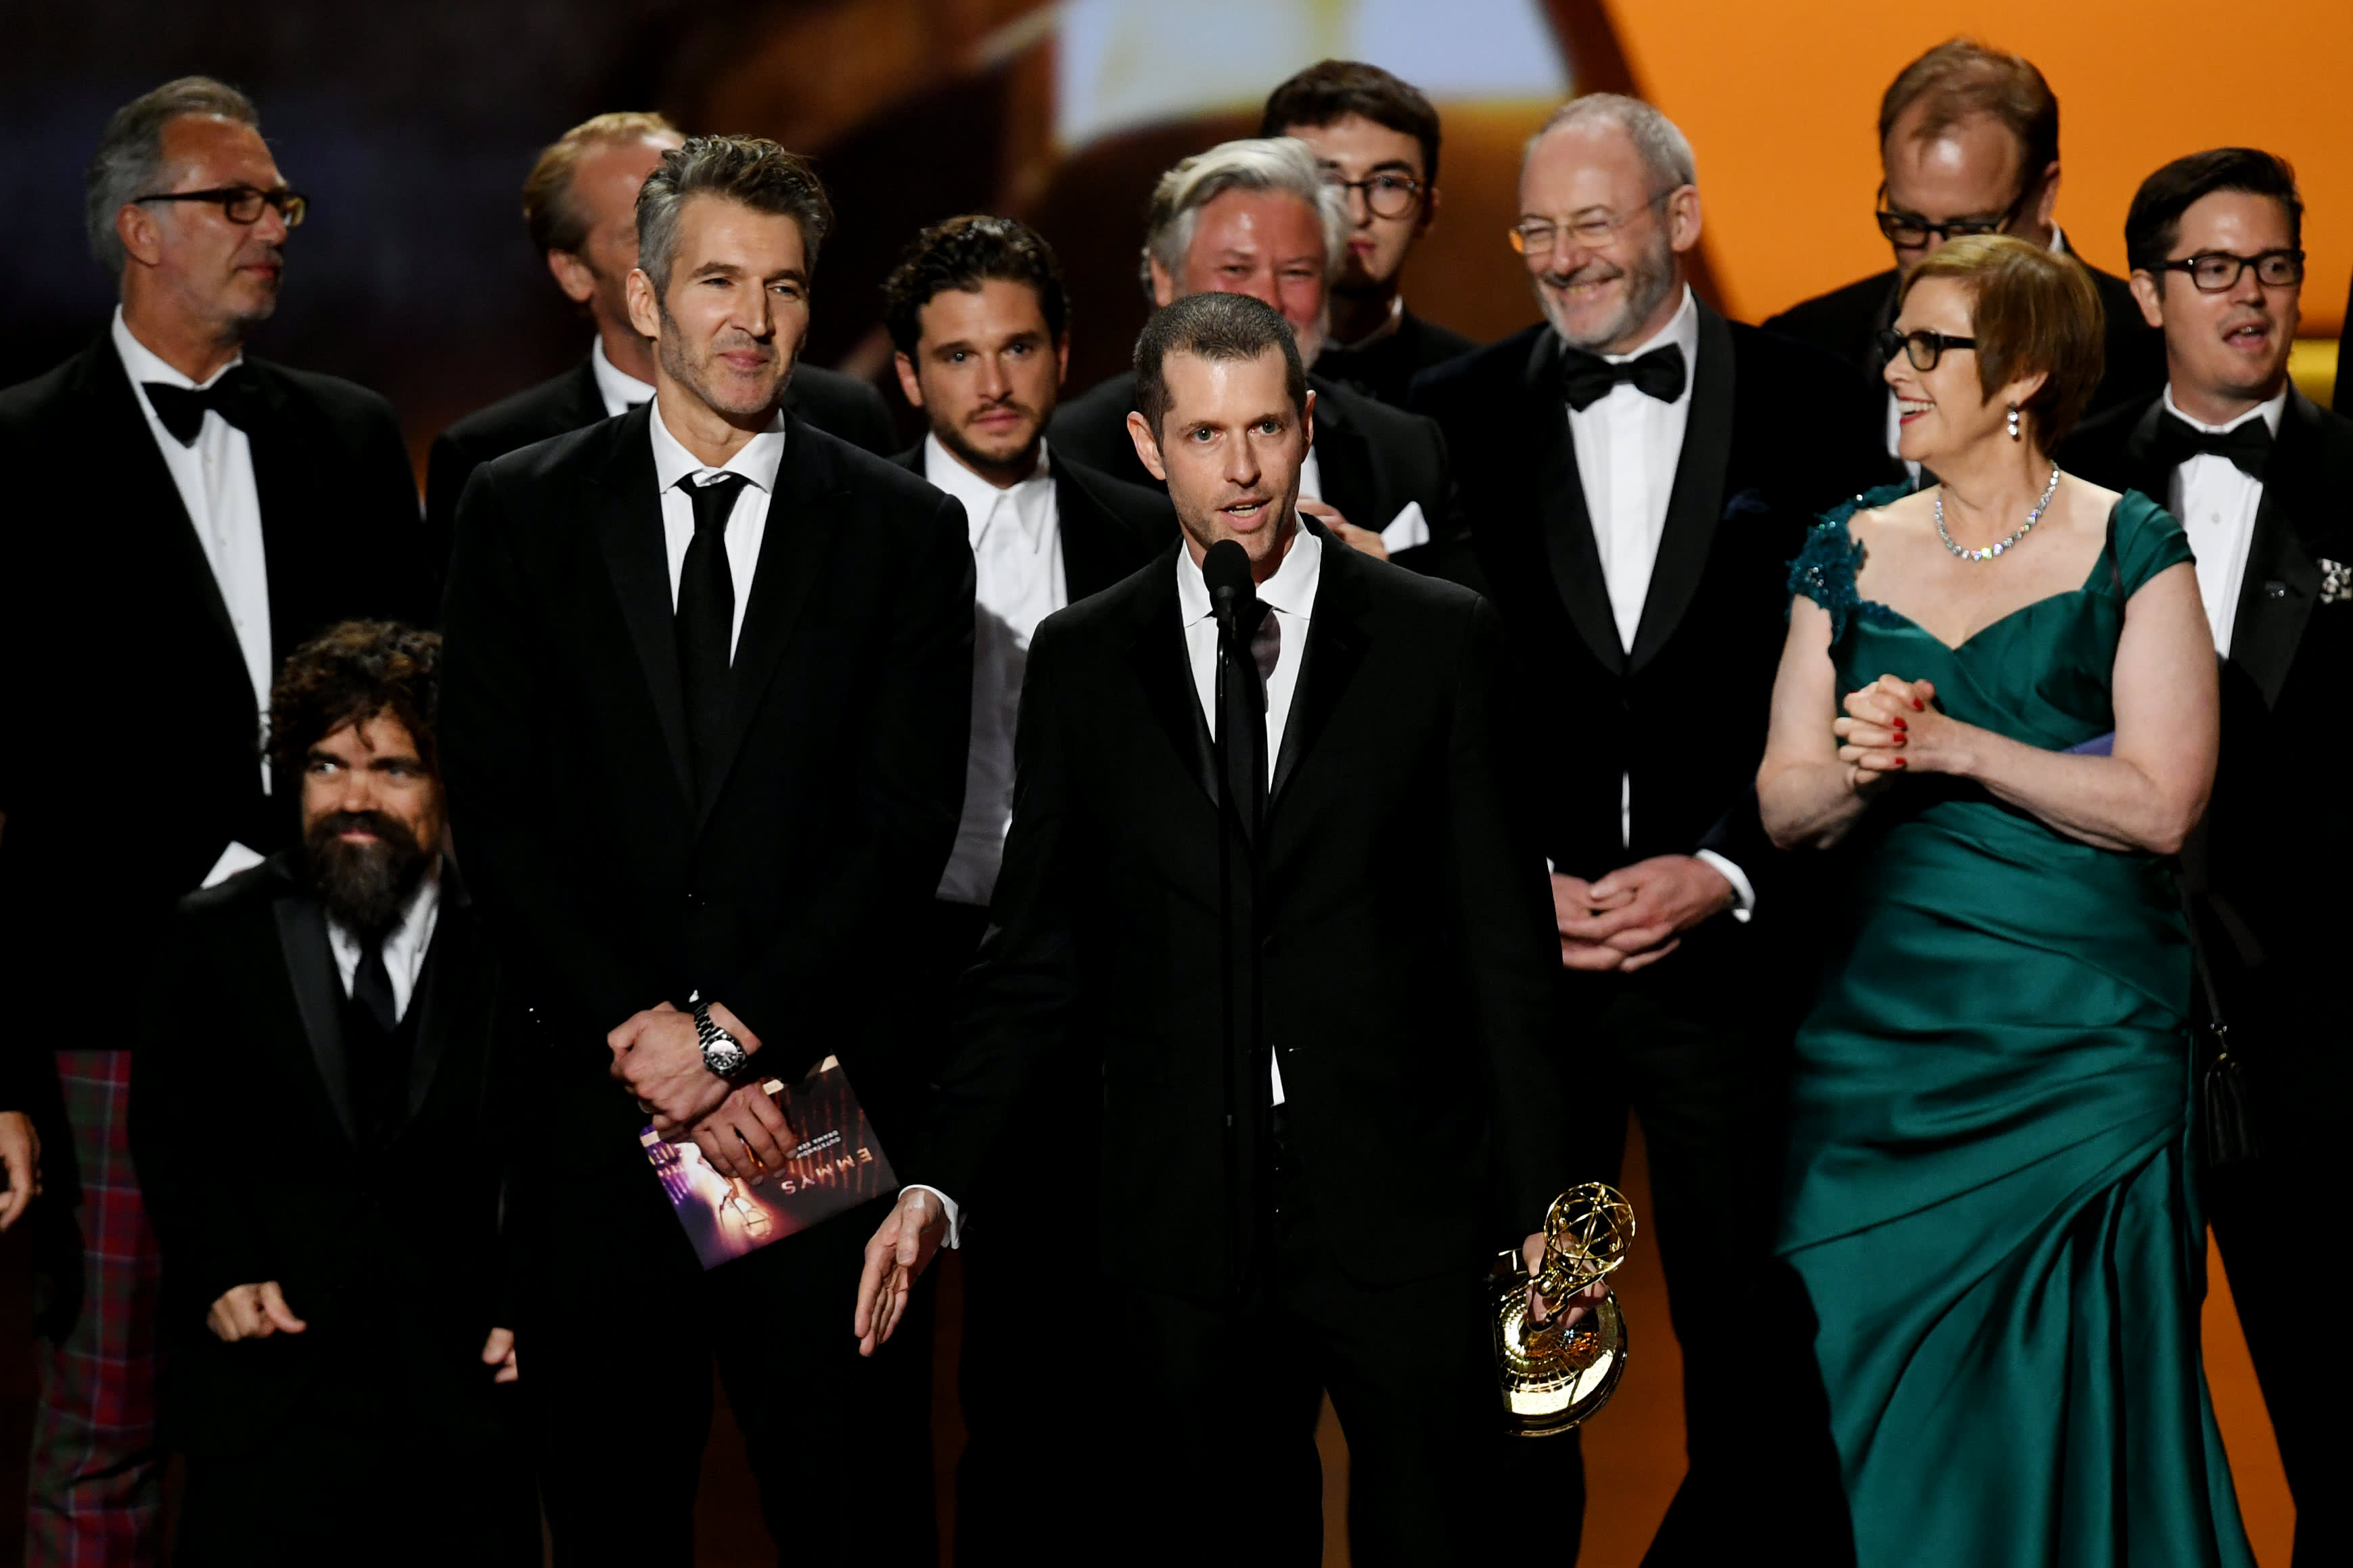 'Game of Thrones' ends run with outstanding drama award, 59 total Emmy Awards